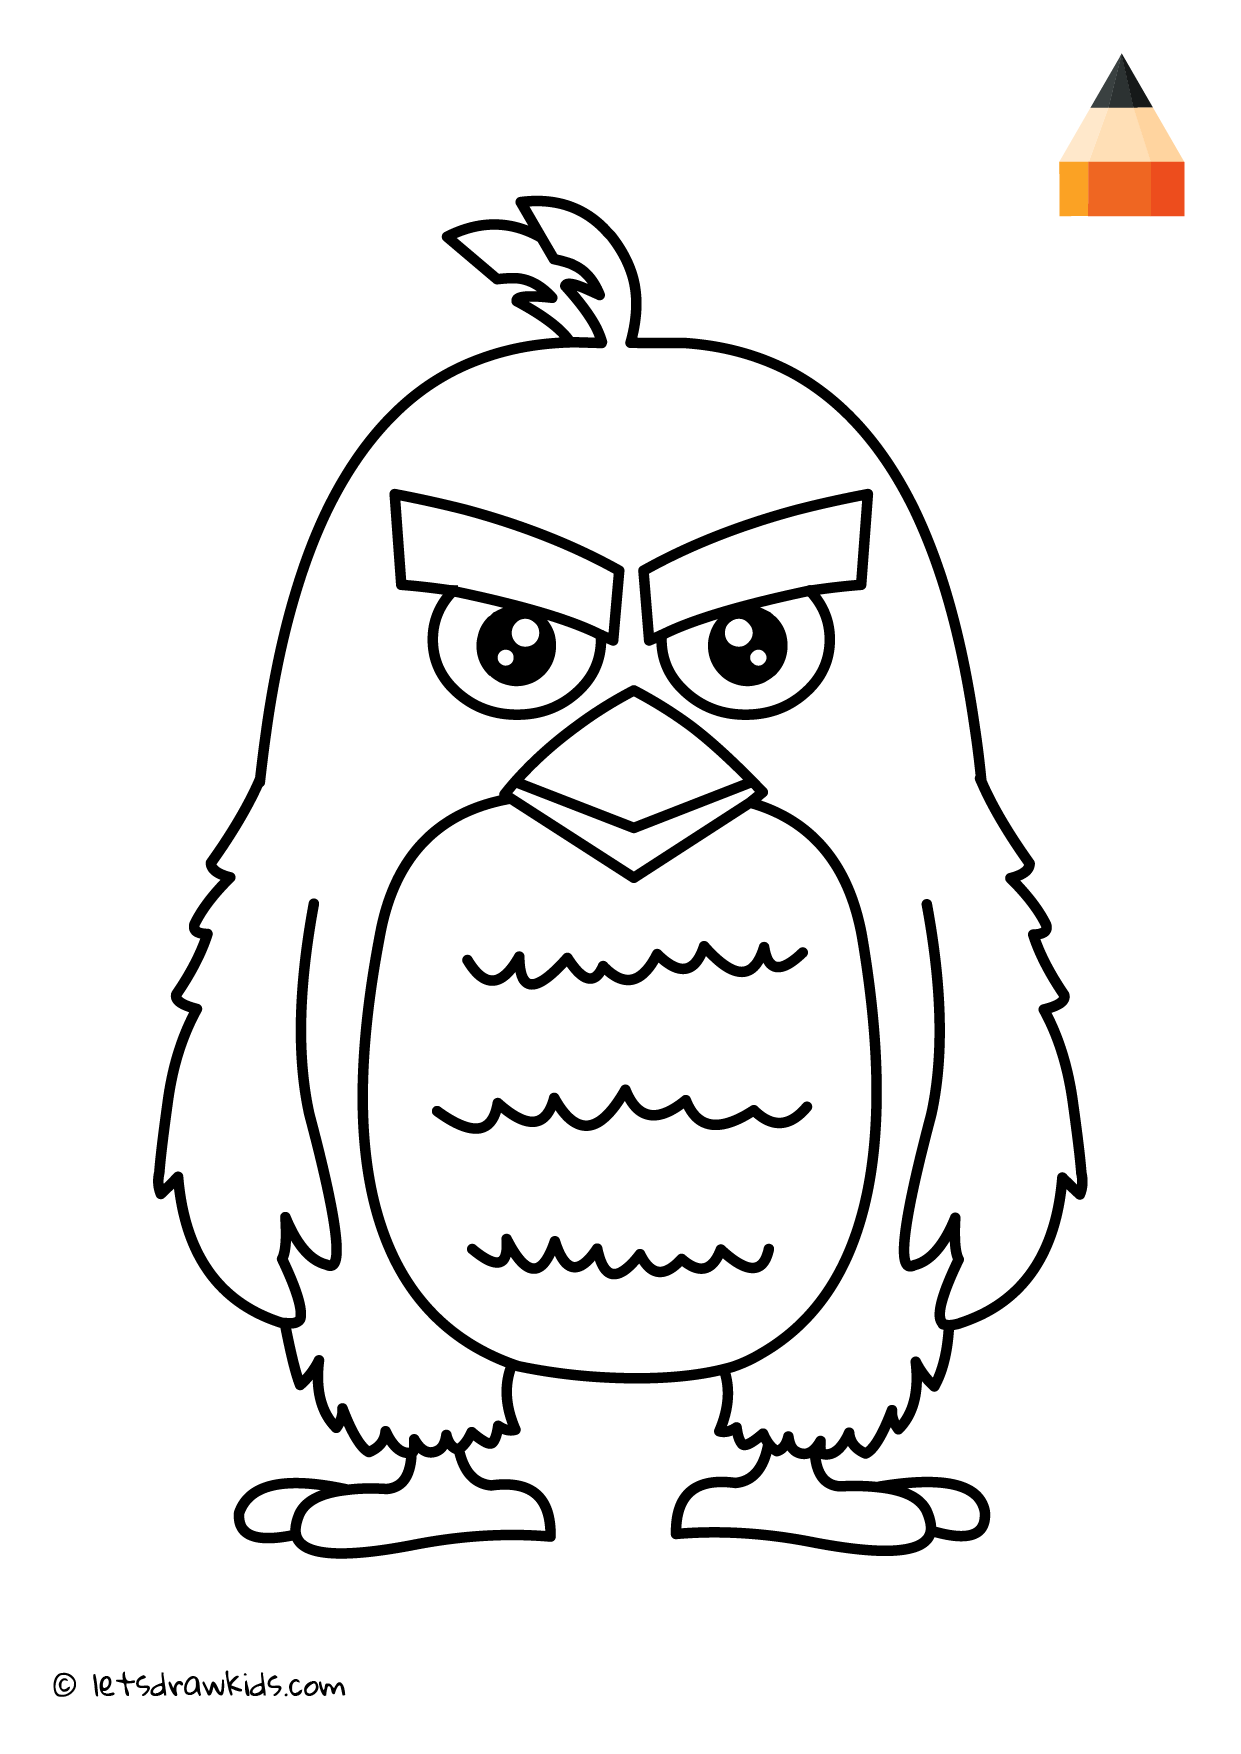 Coloring Page Angry Birds Red Bird Drawings Angry Birds Characters Drawings